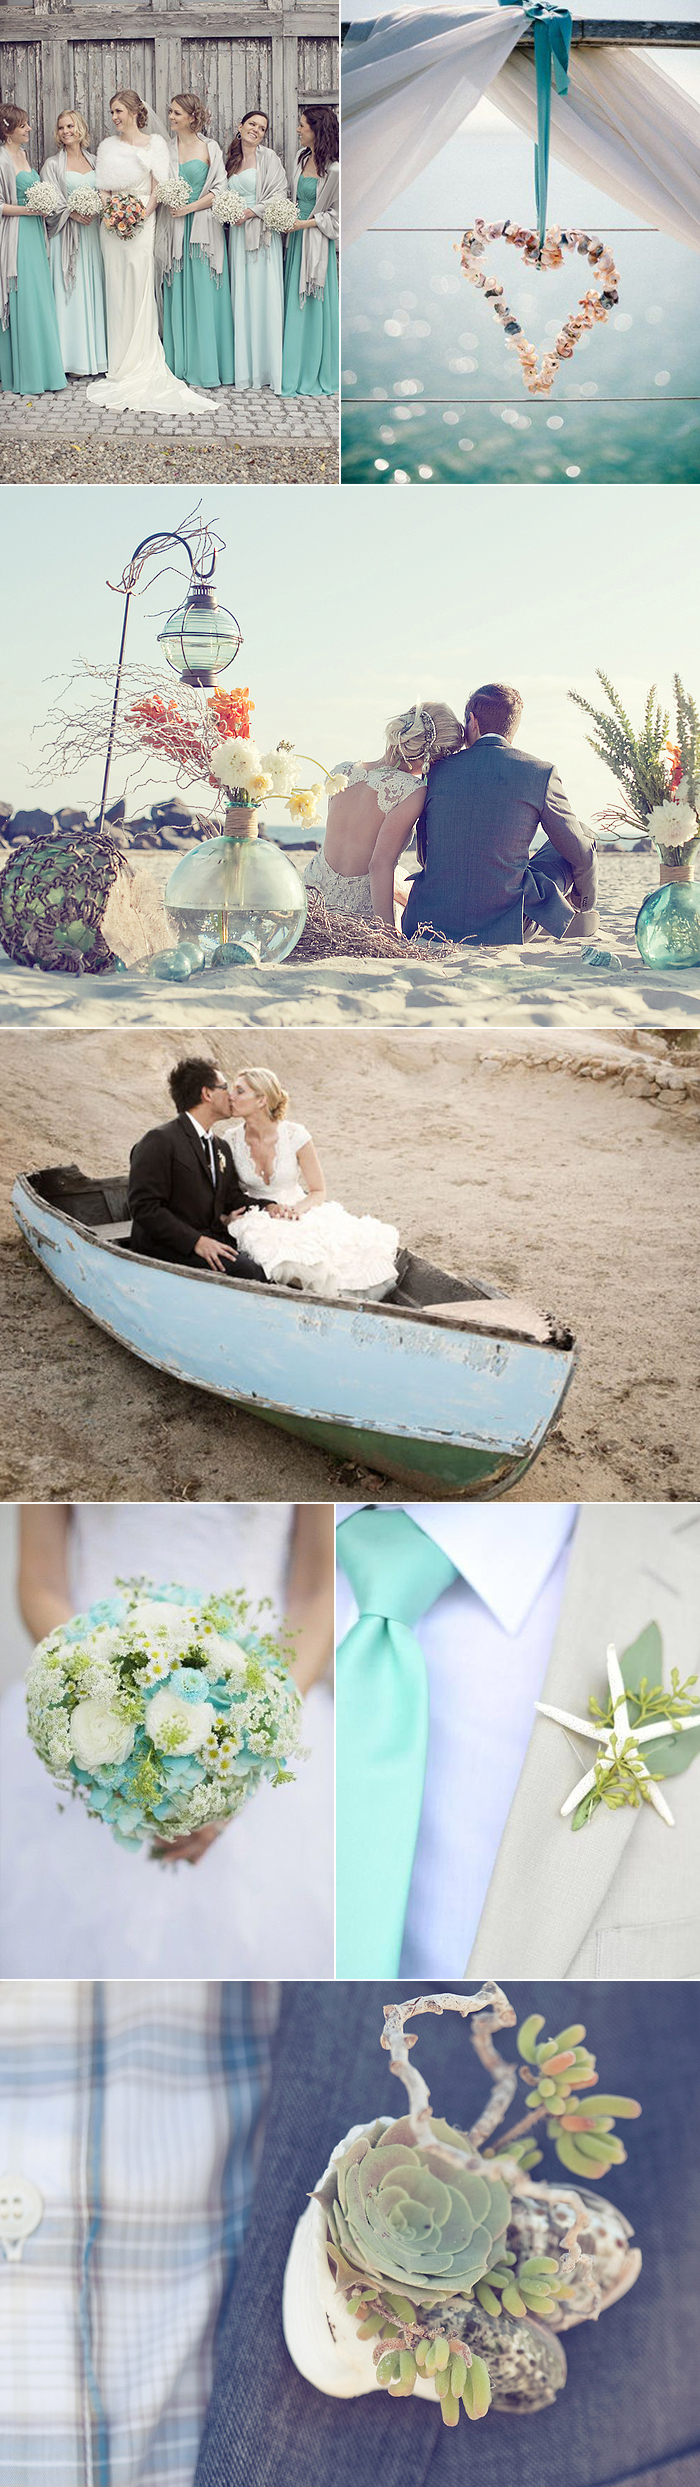 Wedding Color Inspiration for Beach Glass | Bows-N-Ties.com